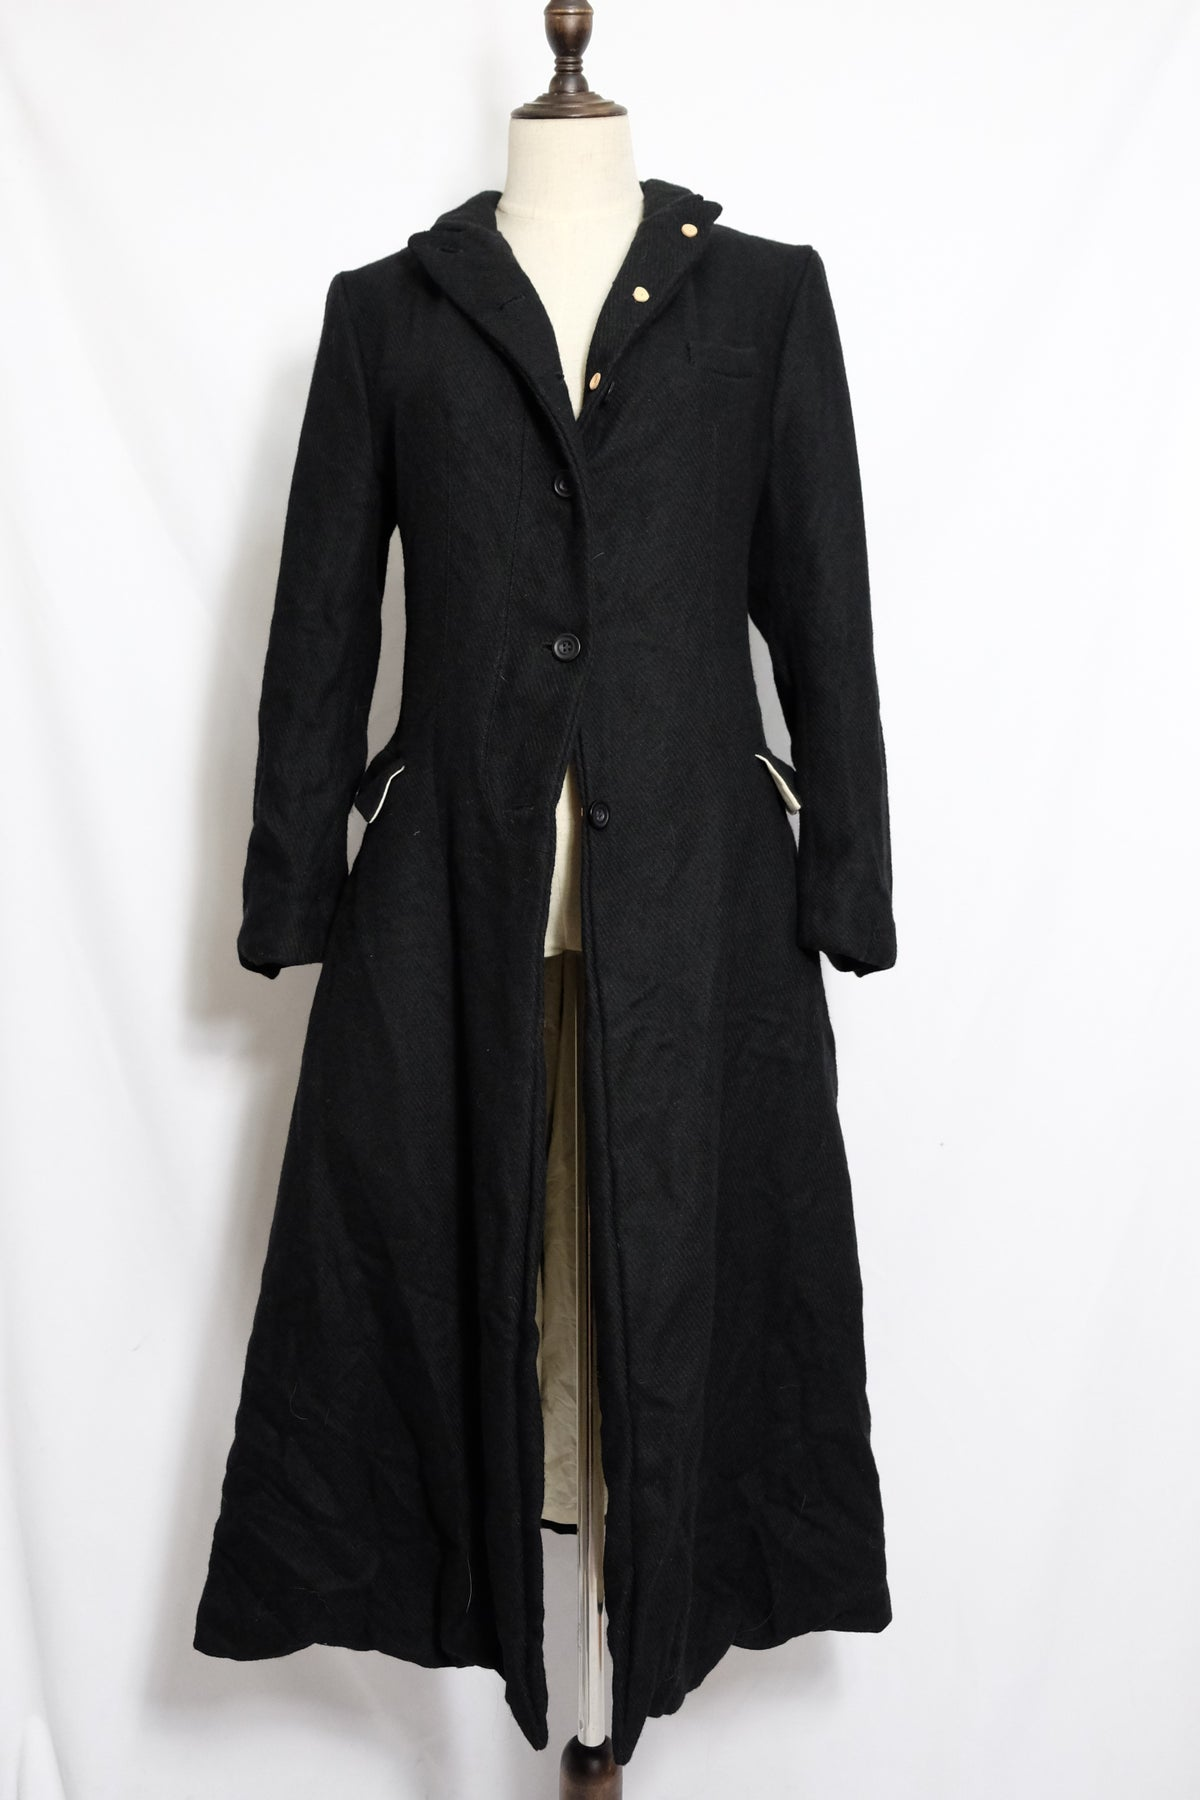 Image of PRE-OWEND CLOTHING - Wool Long Coat